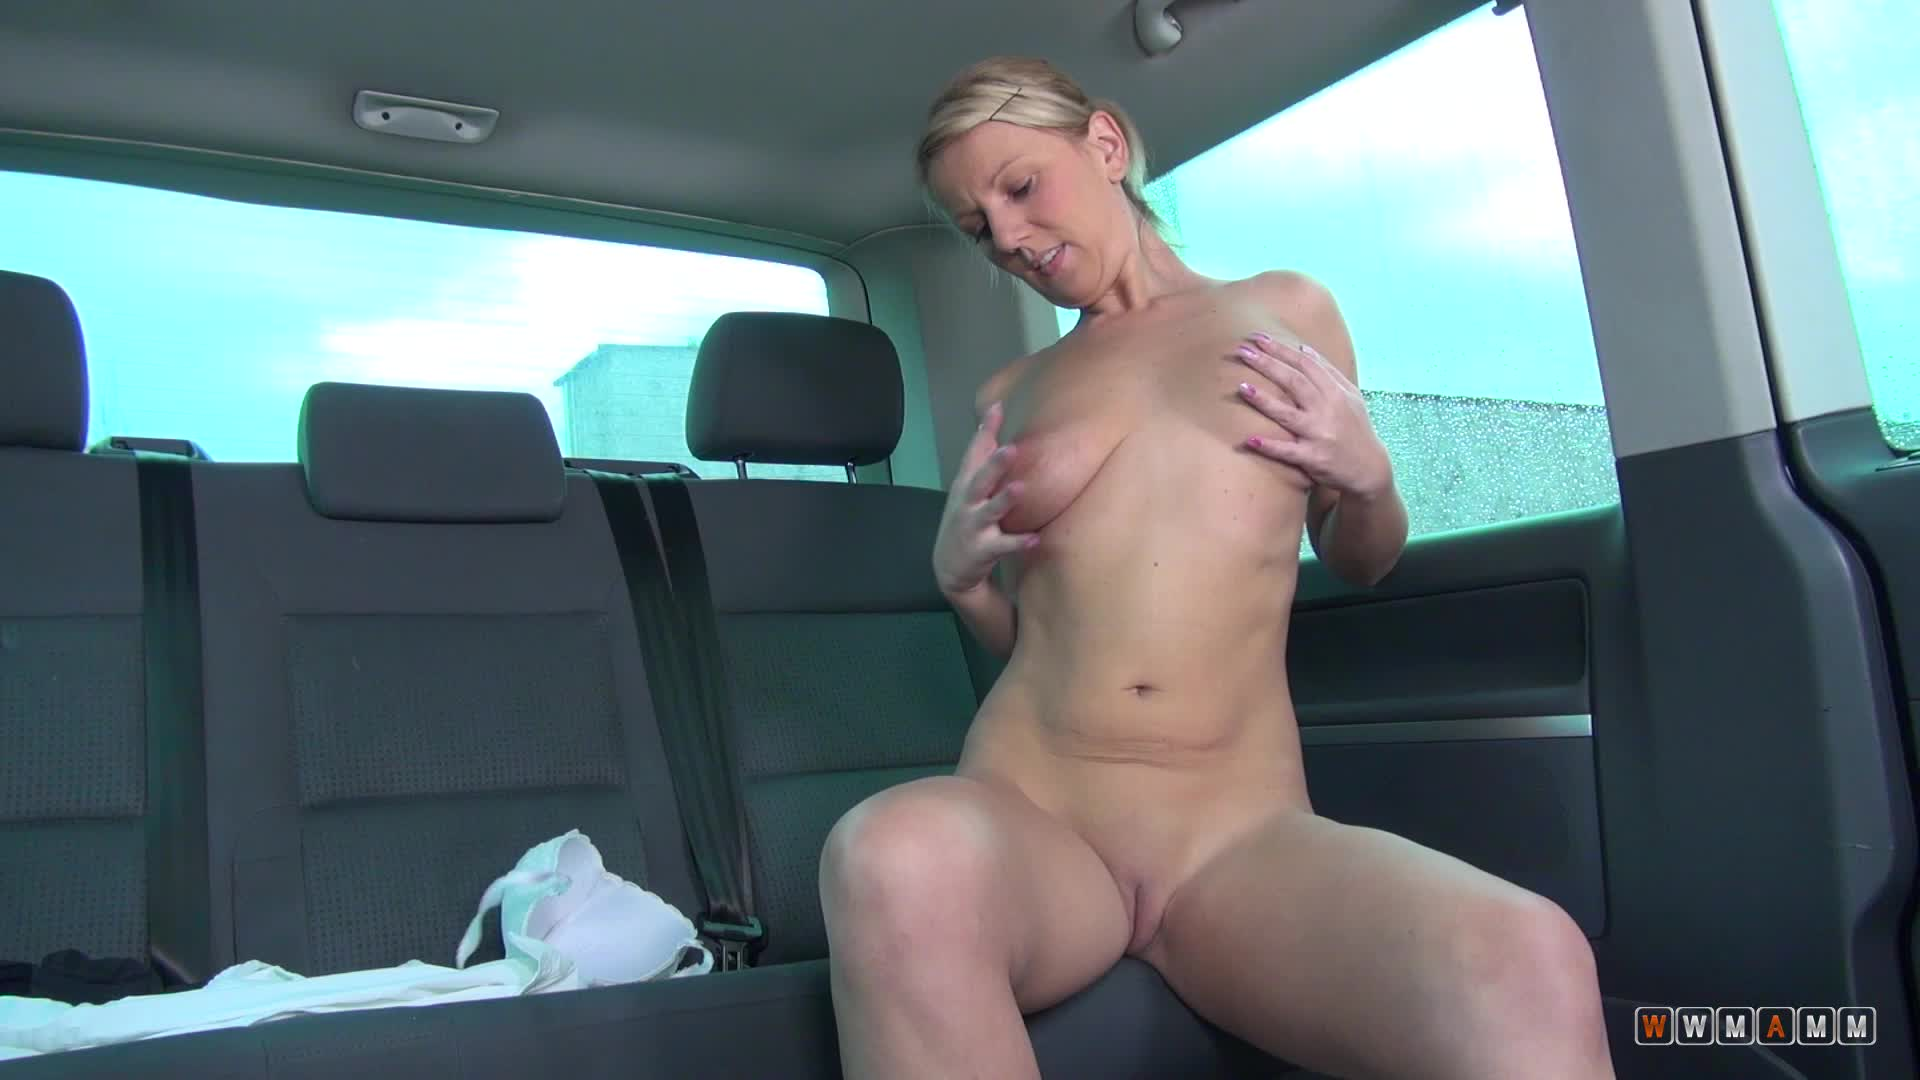 Lucy Is A Hot Blonde Milf With A Sweet Cameltoe Surprise